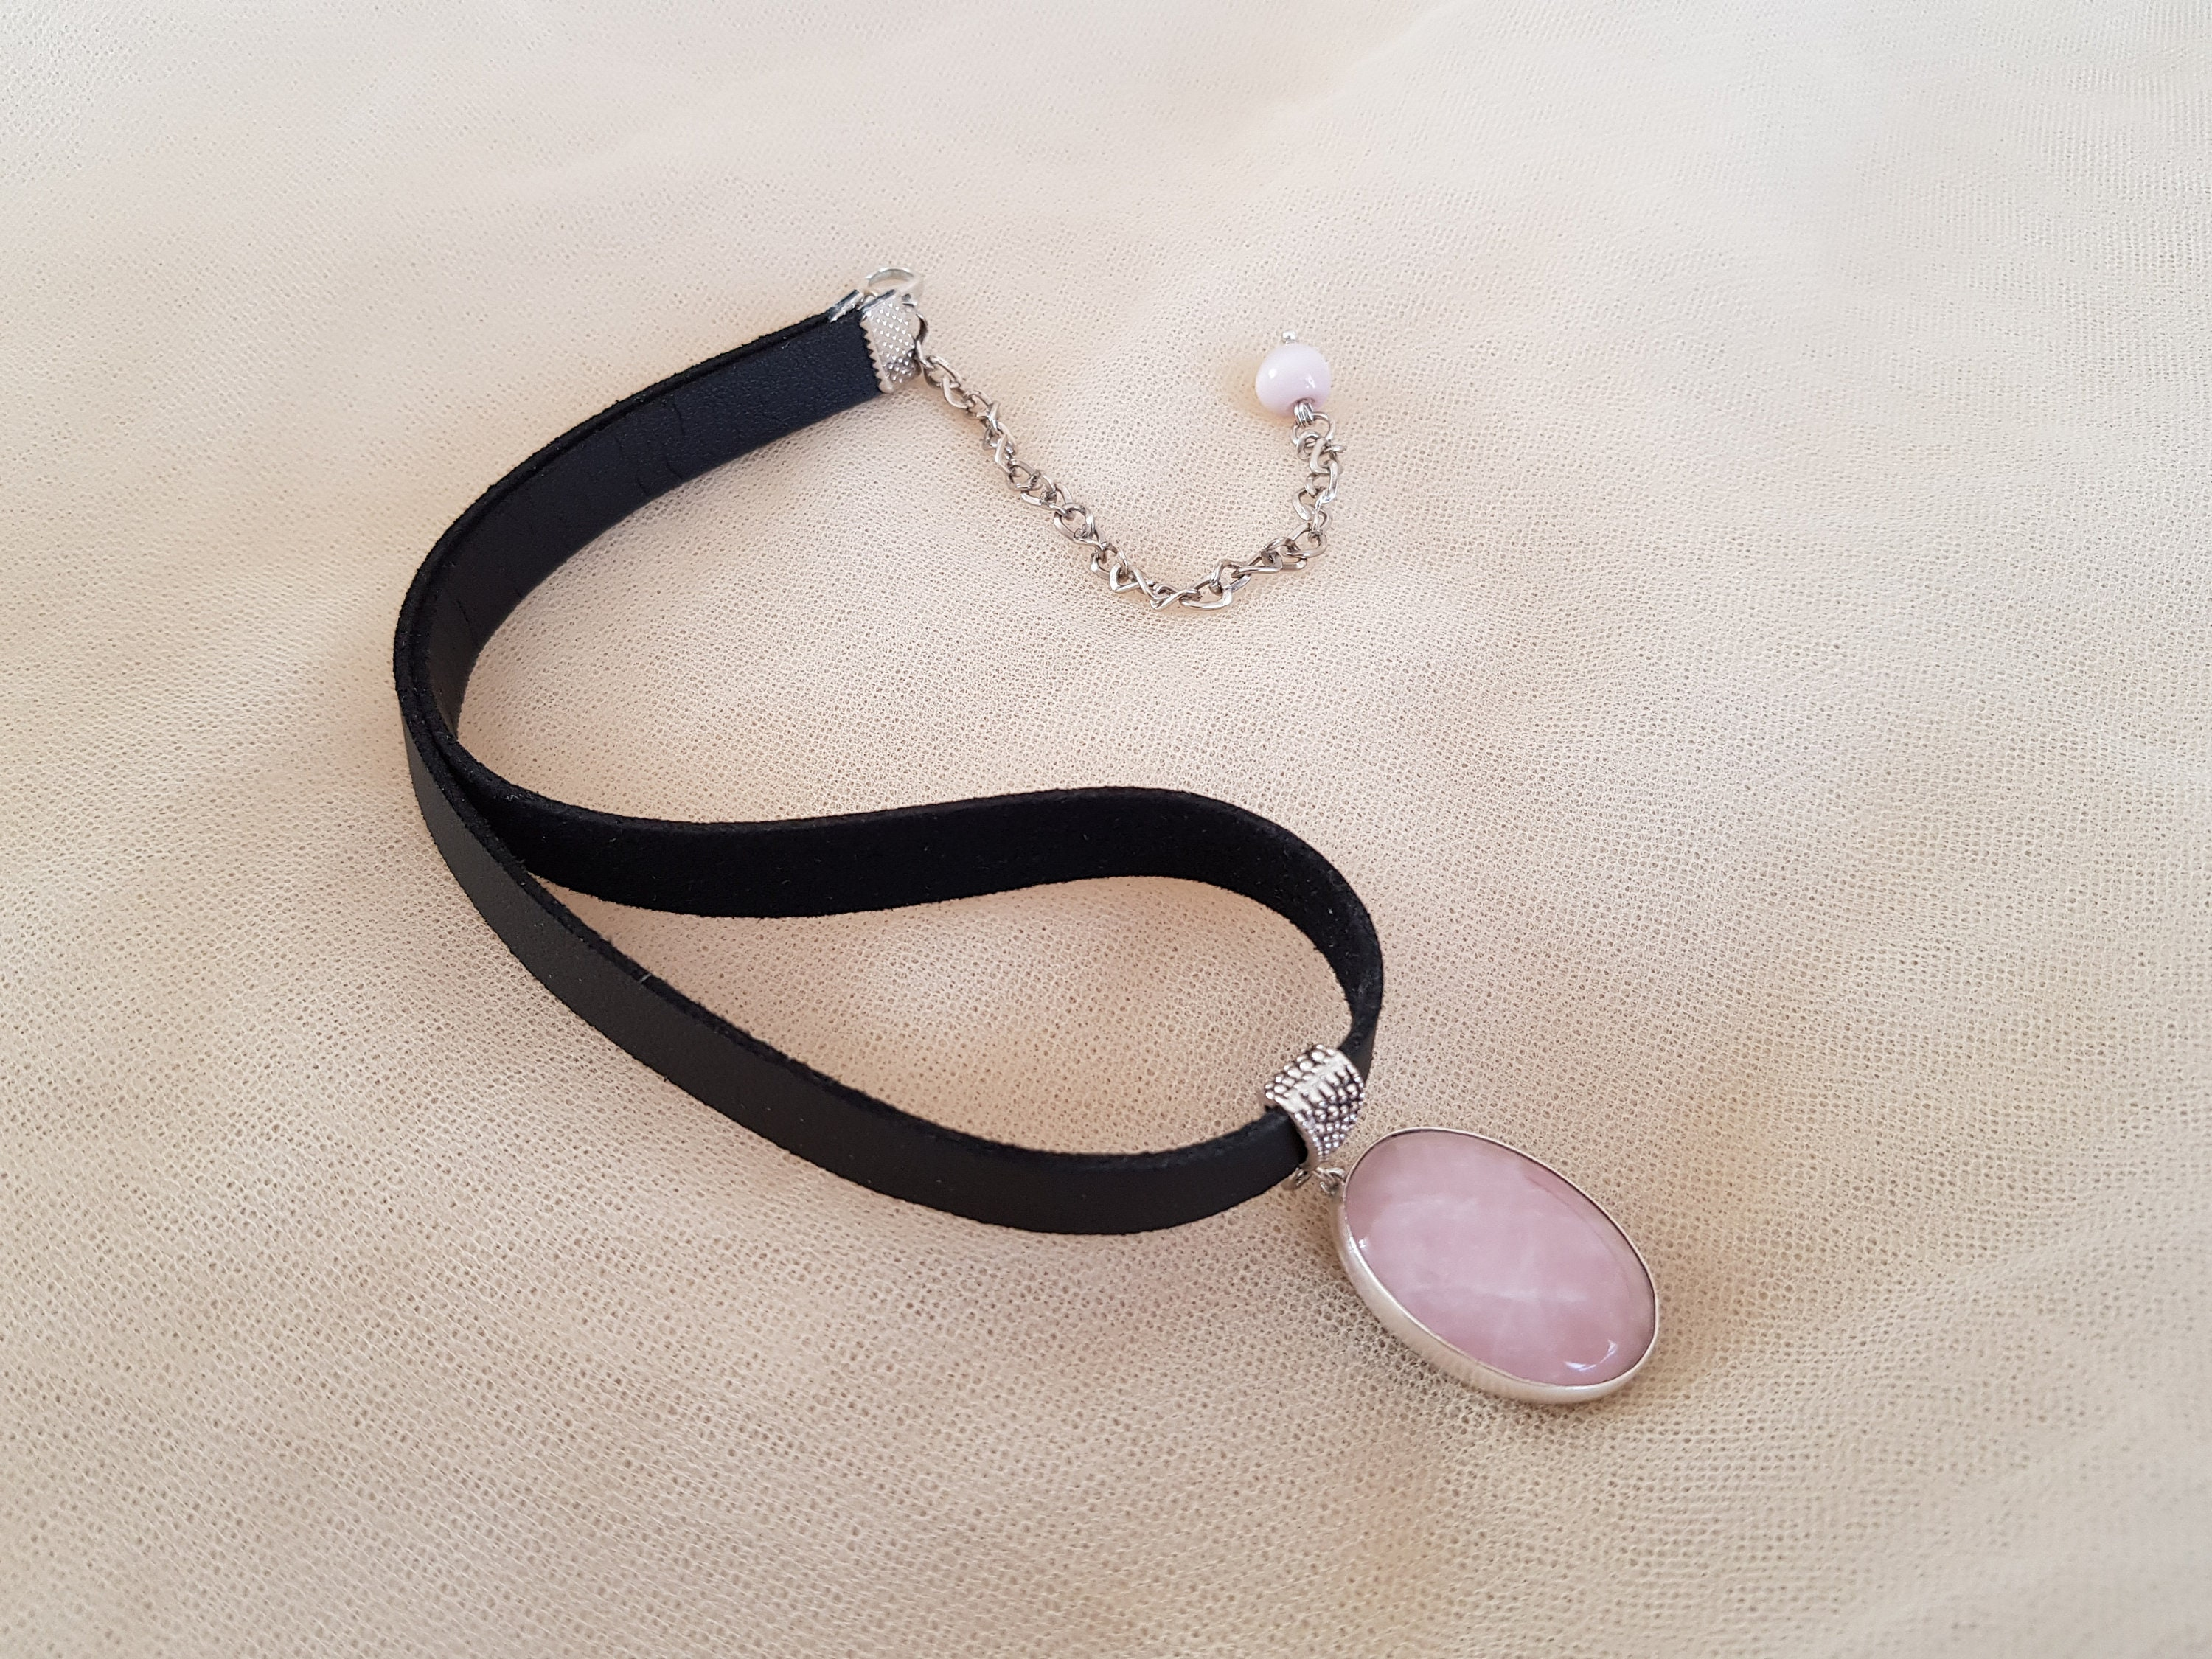 Silver Plated Accessory Ceramic Pendant Necklace Pink Necklace Handmade Multi Color Necklace Rose Quartz Natural Stone Necklace